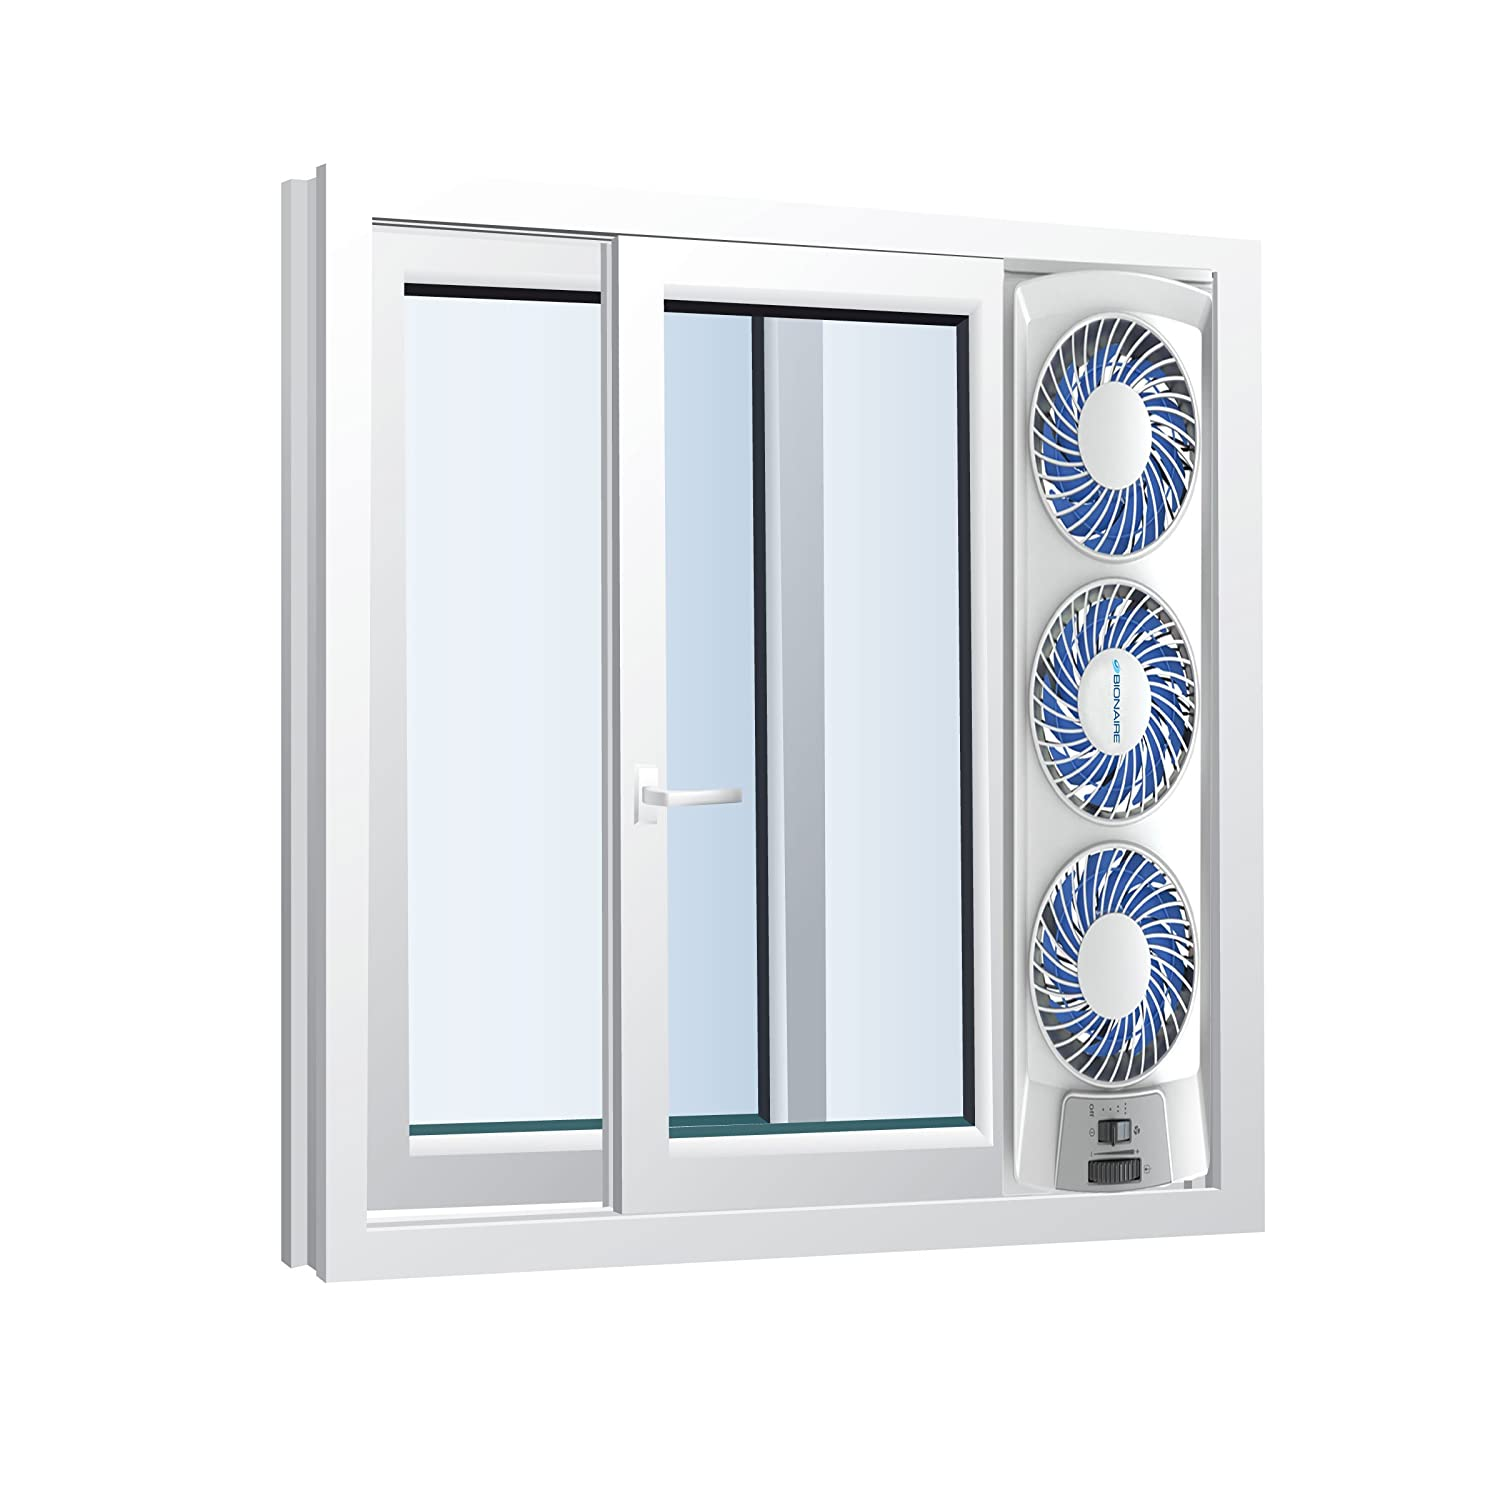 New Independent Reversible Thermostat Fan Window Speed 3